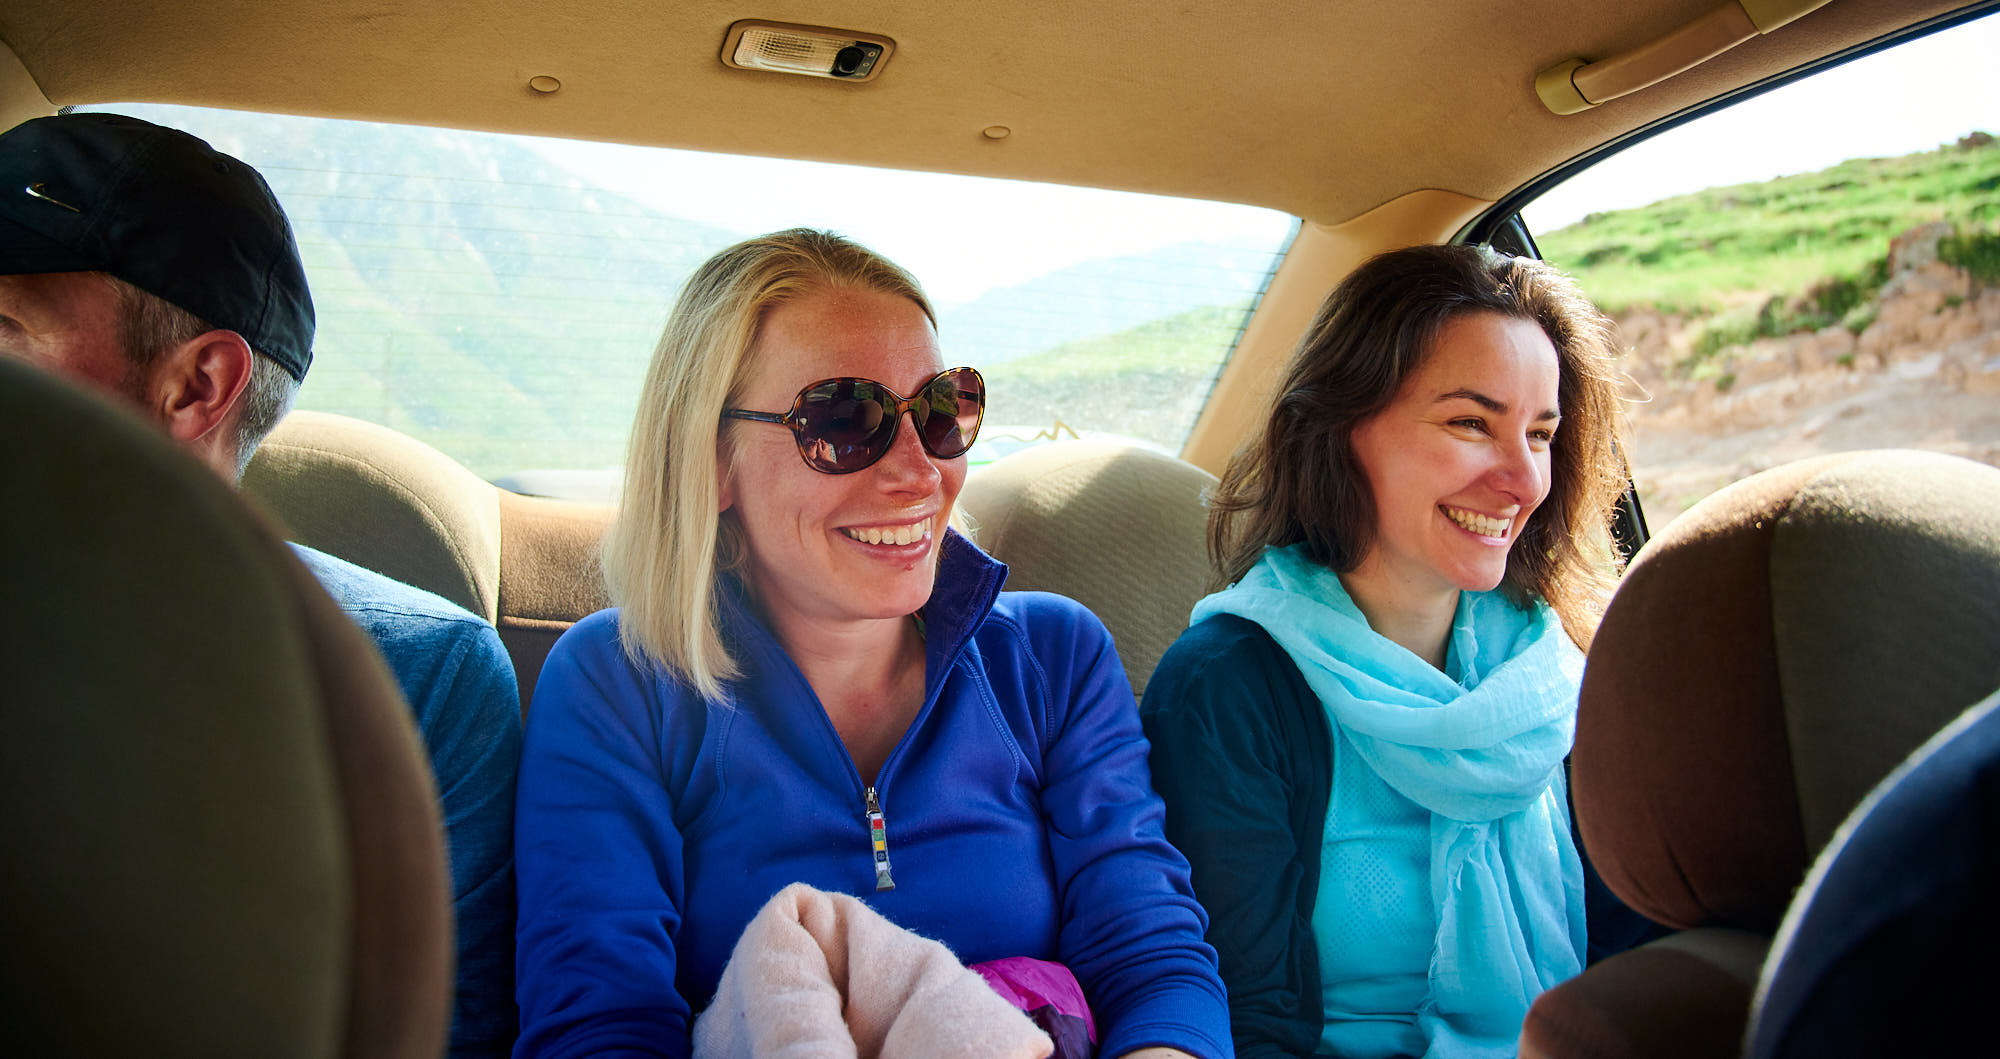 Mountaineers on a road trip in Iran